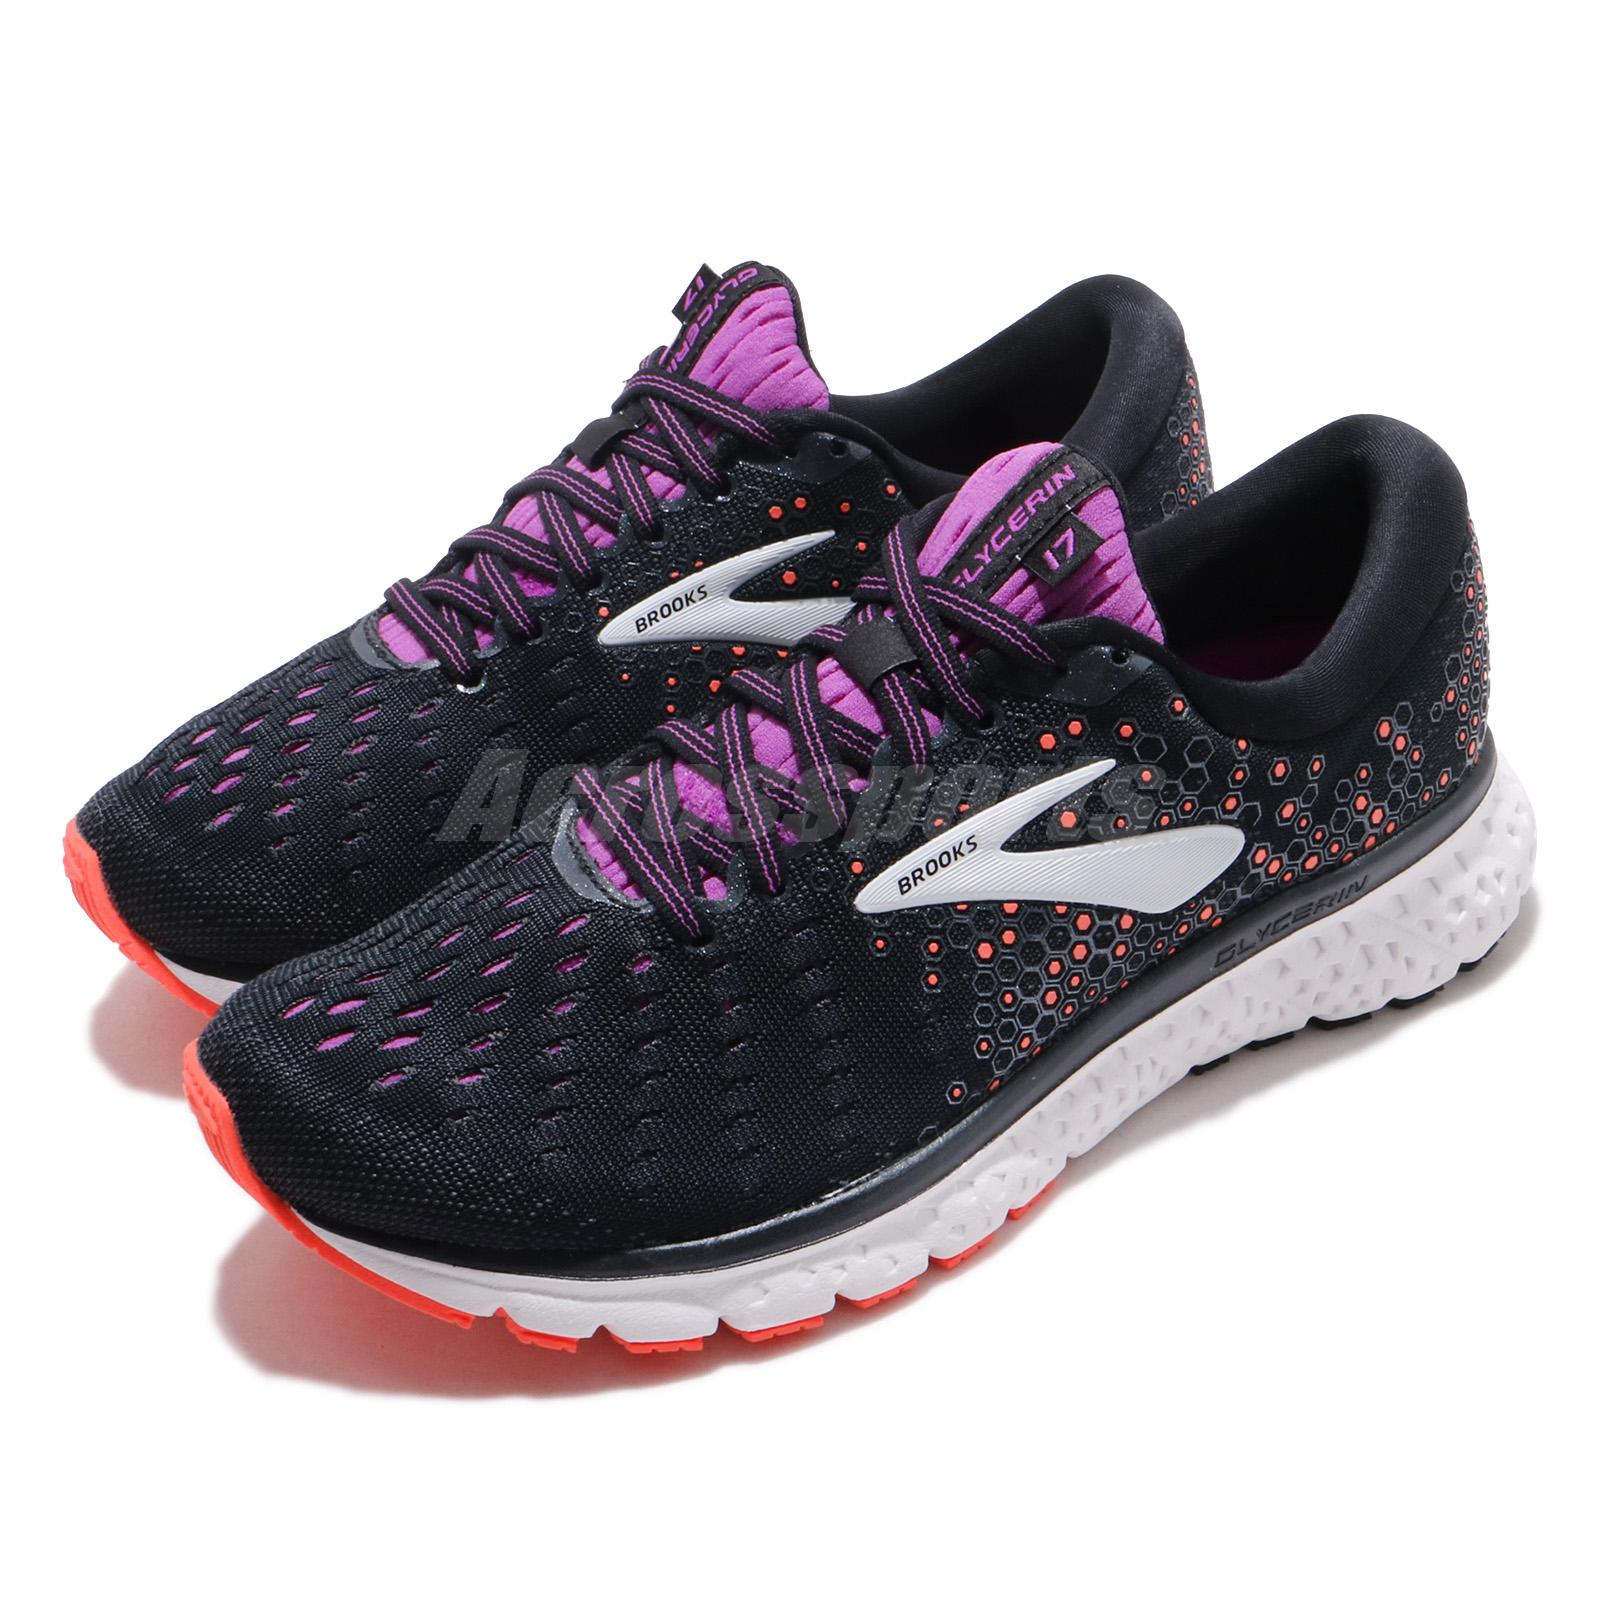 fed8a191846 Details about Brooks Glycerin 17 D Wide Black Fiery Coral Purple Women  Running Shoes 120283 1D